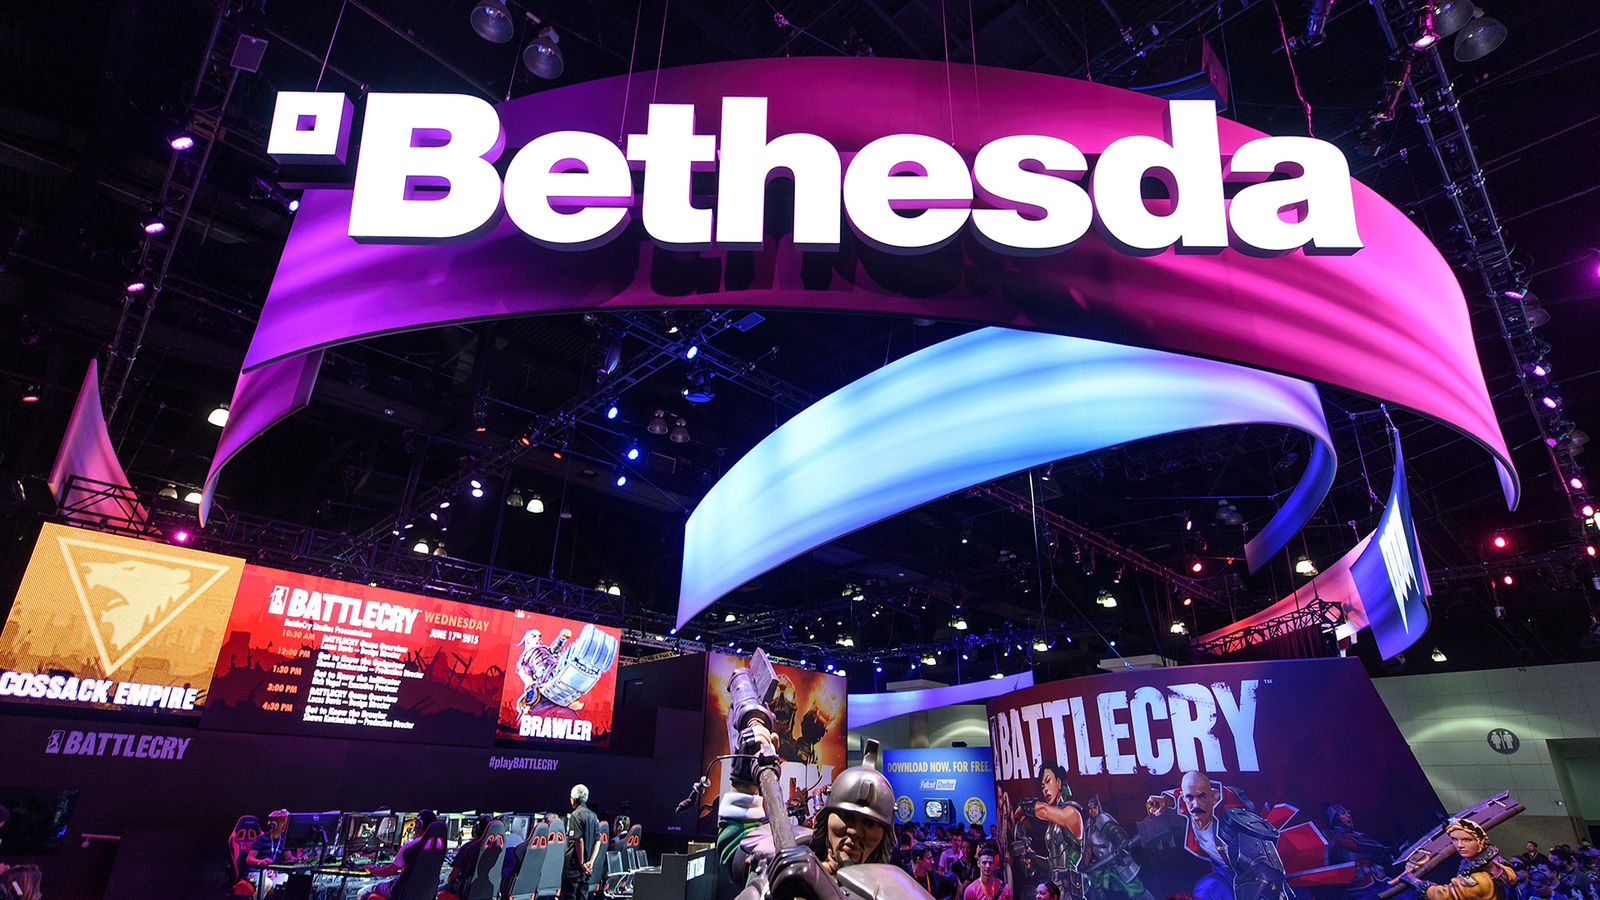 E3 2016 for Bethesda: Facts, rumors and speculation